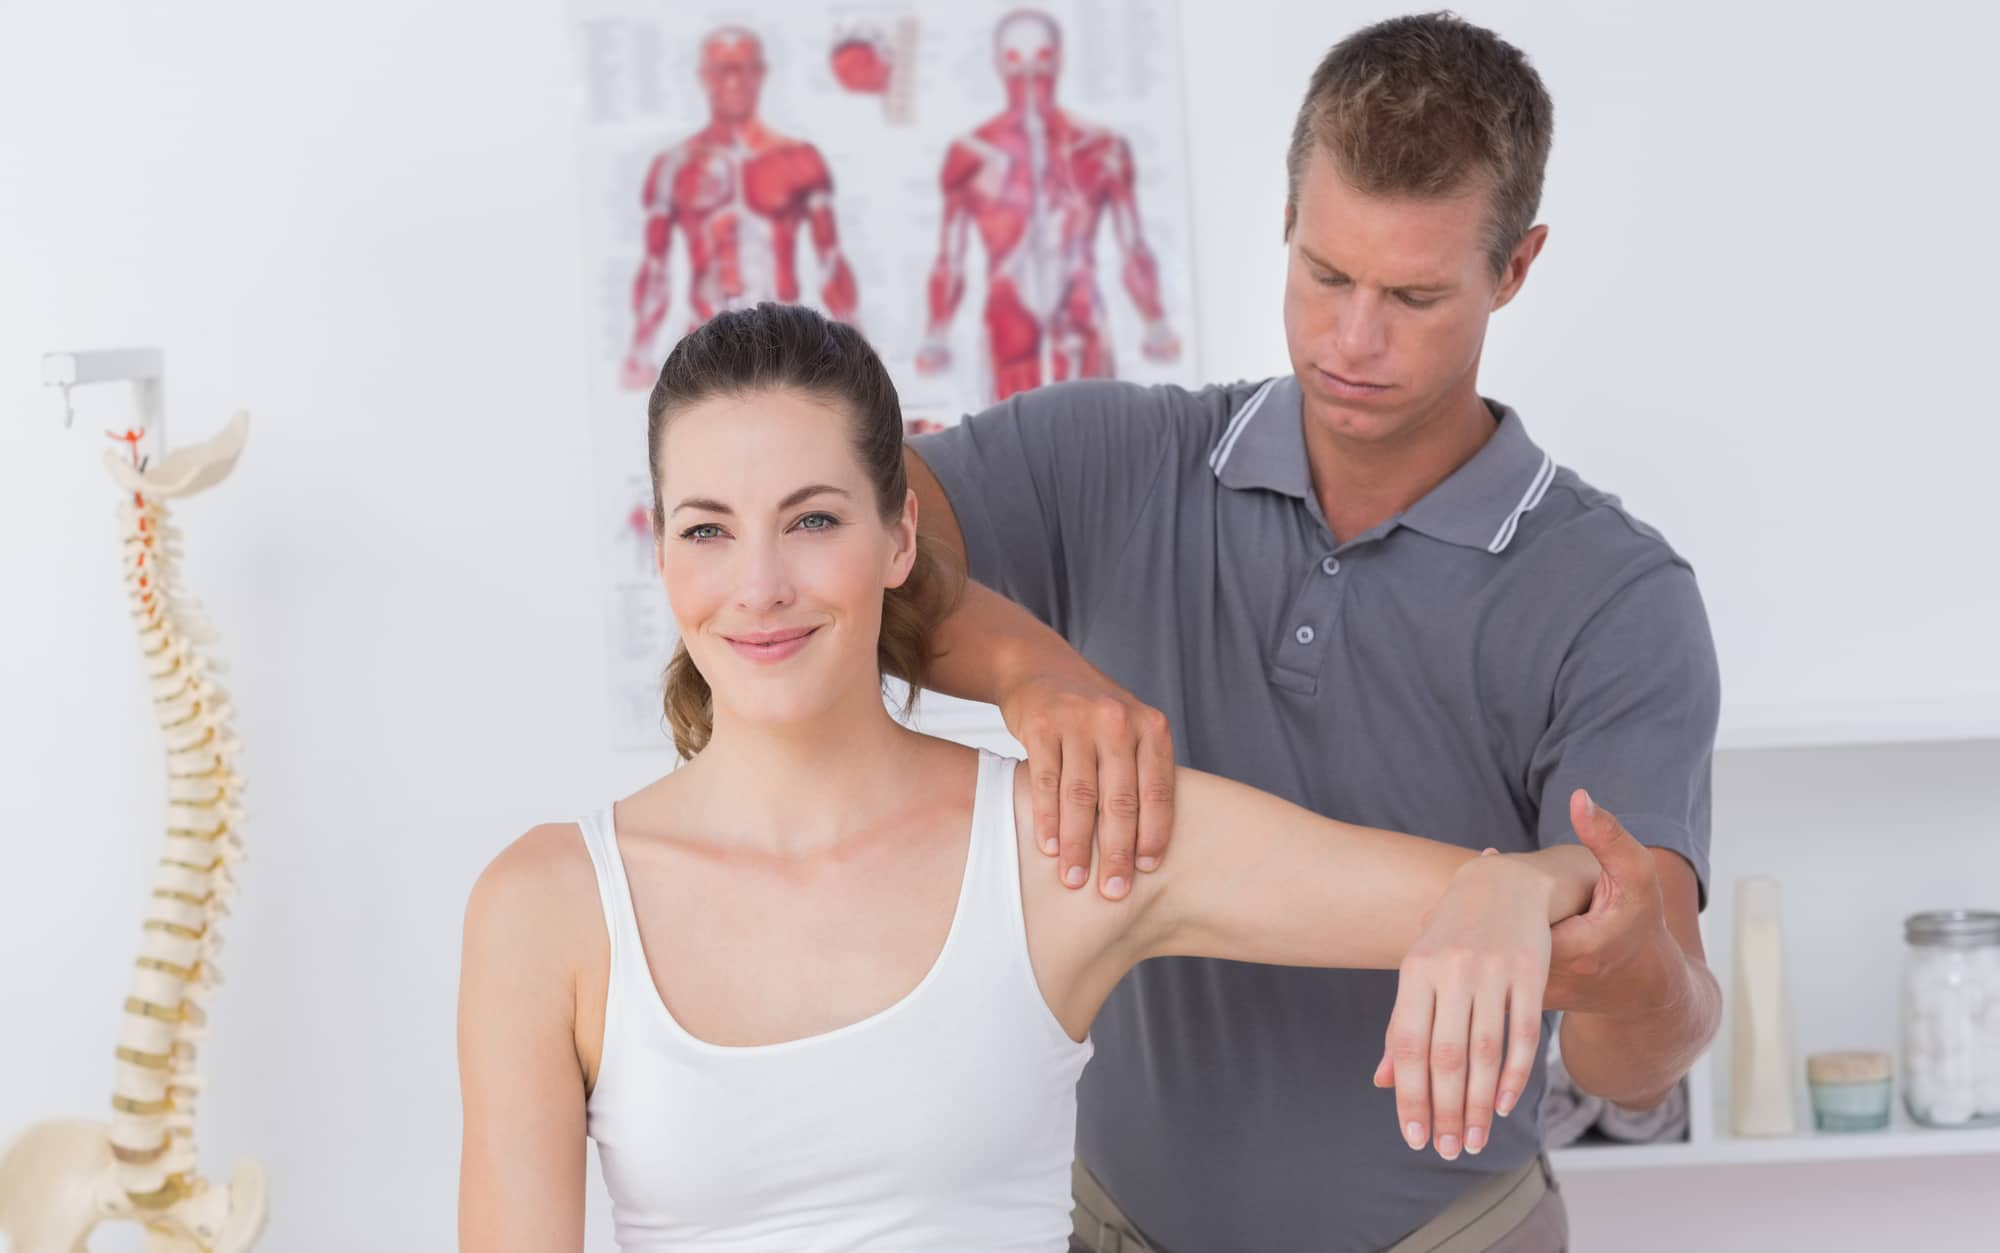 How Do I Get Into a Physical Therapy Aide Program